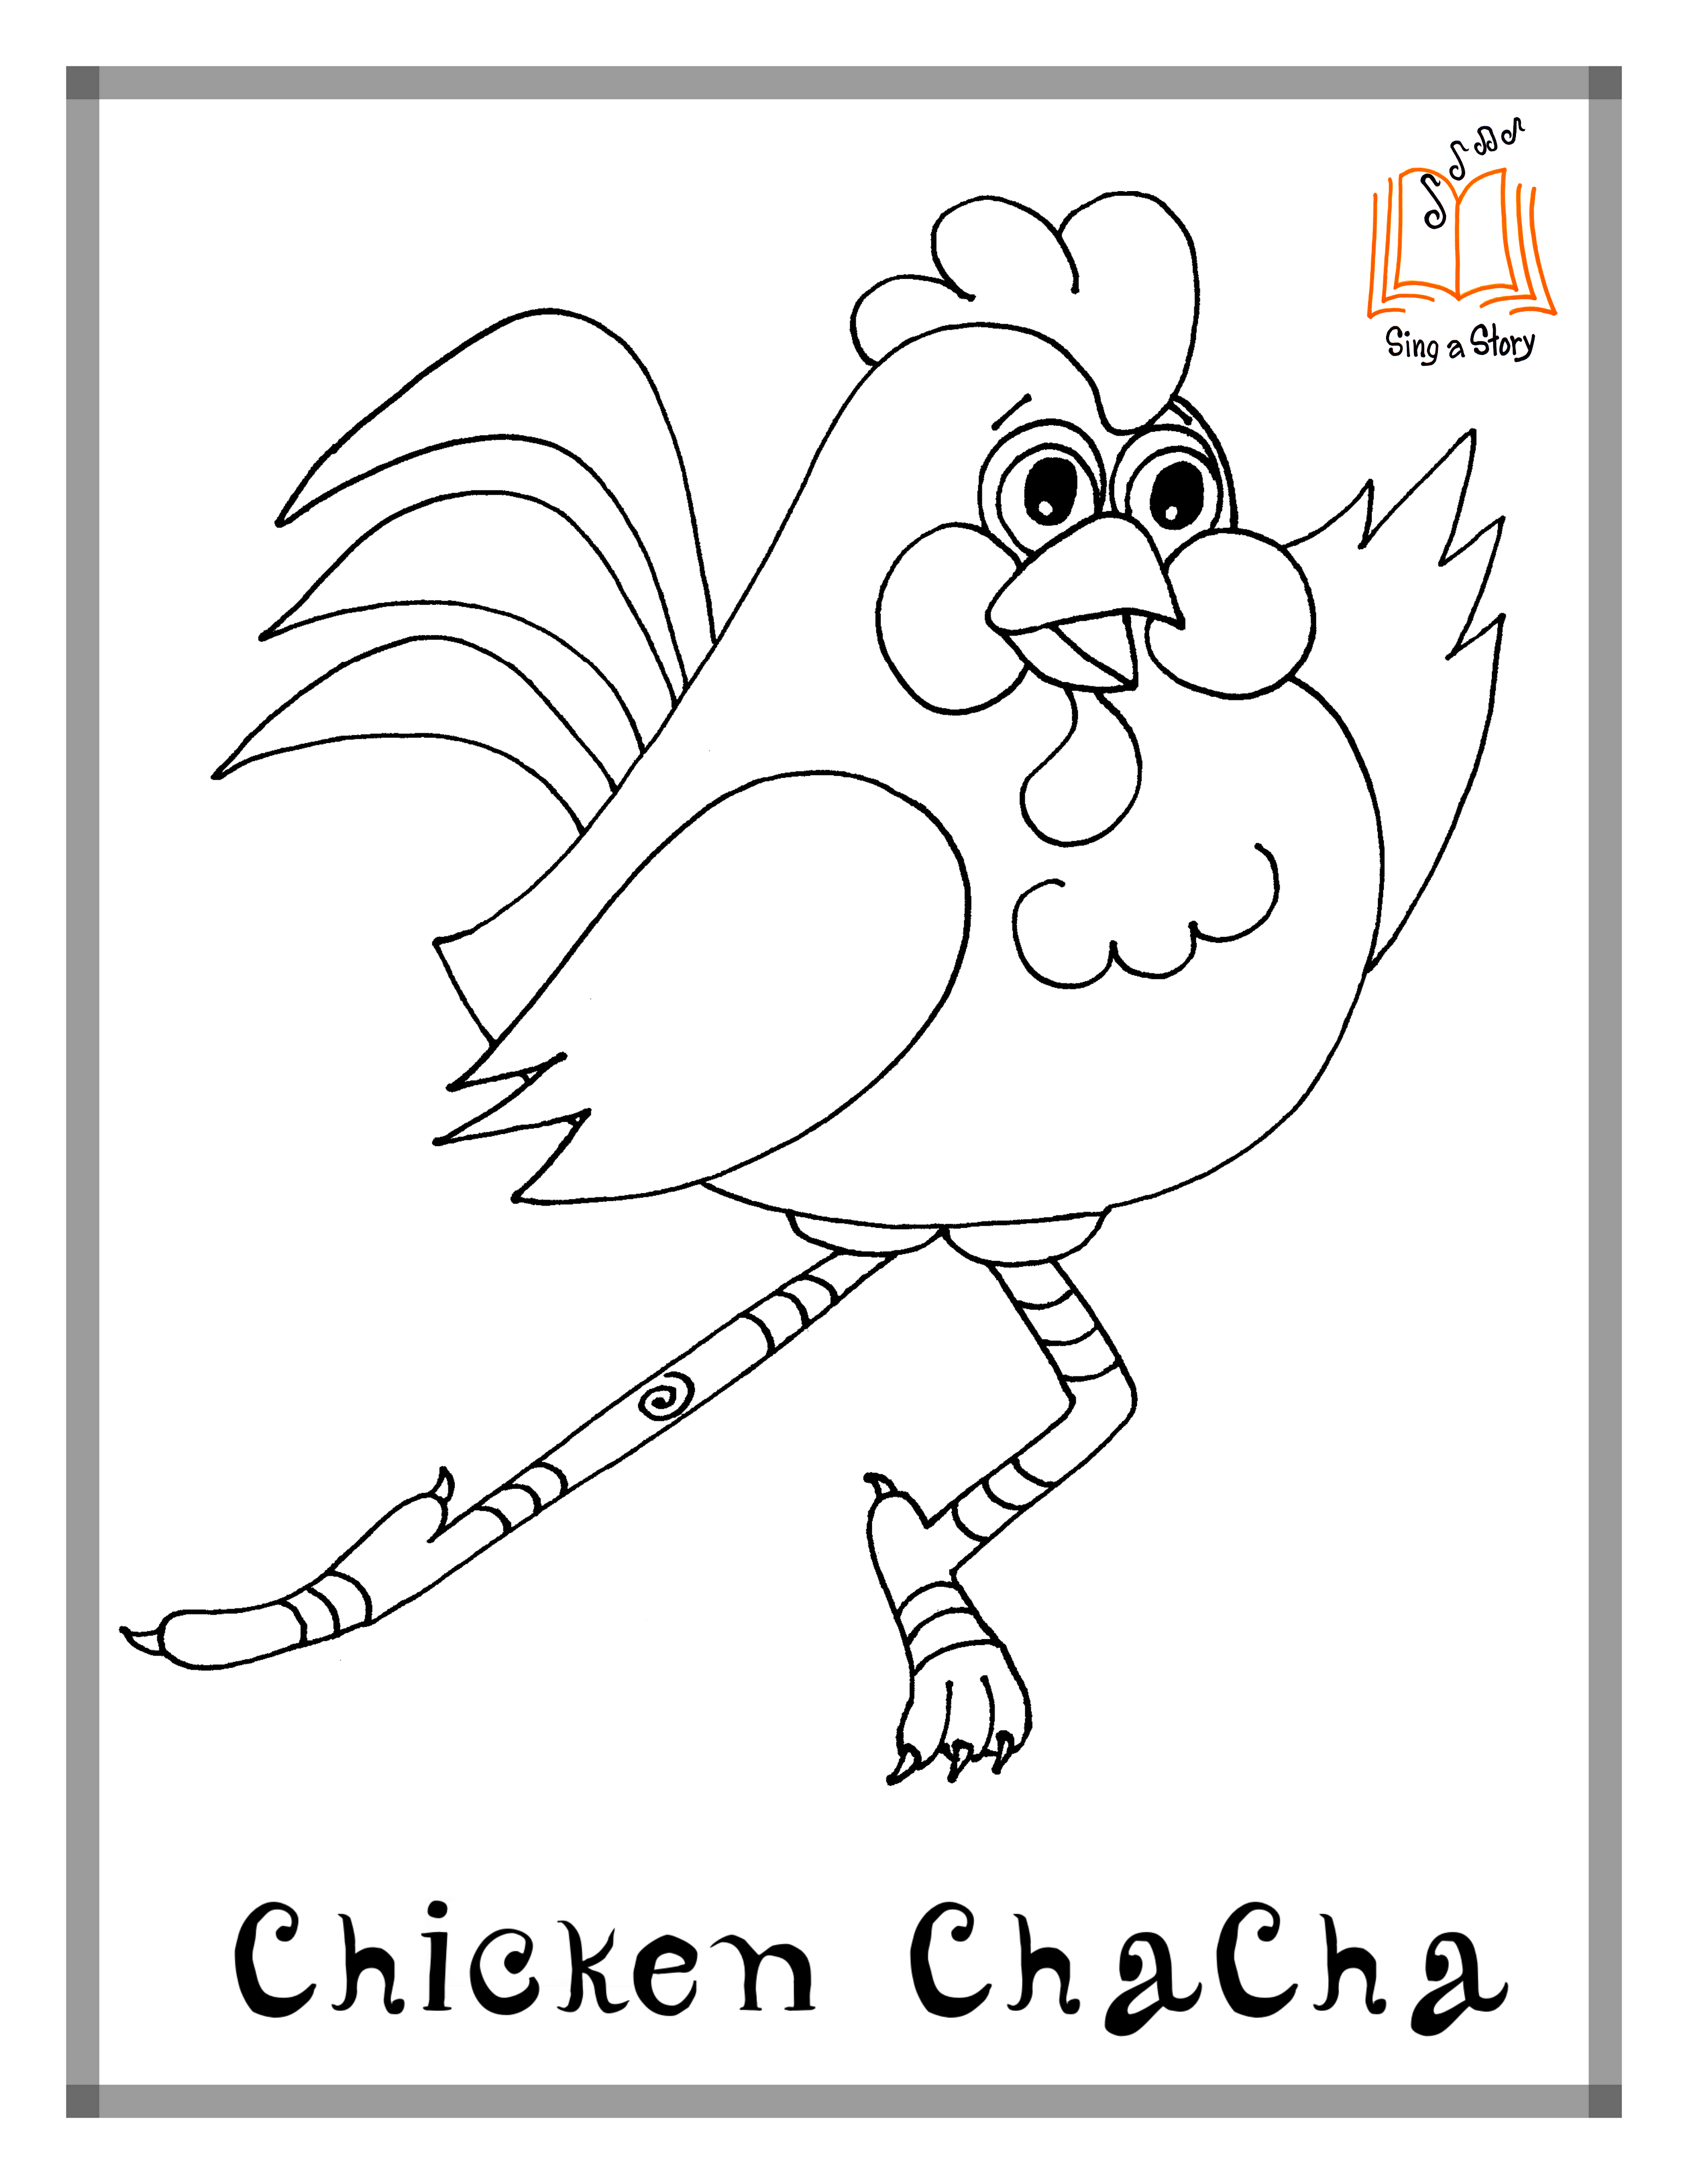 Chicken ChaCha Piggy Paso Hippo Hustle Categories Coloring Pages